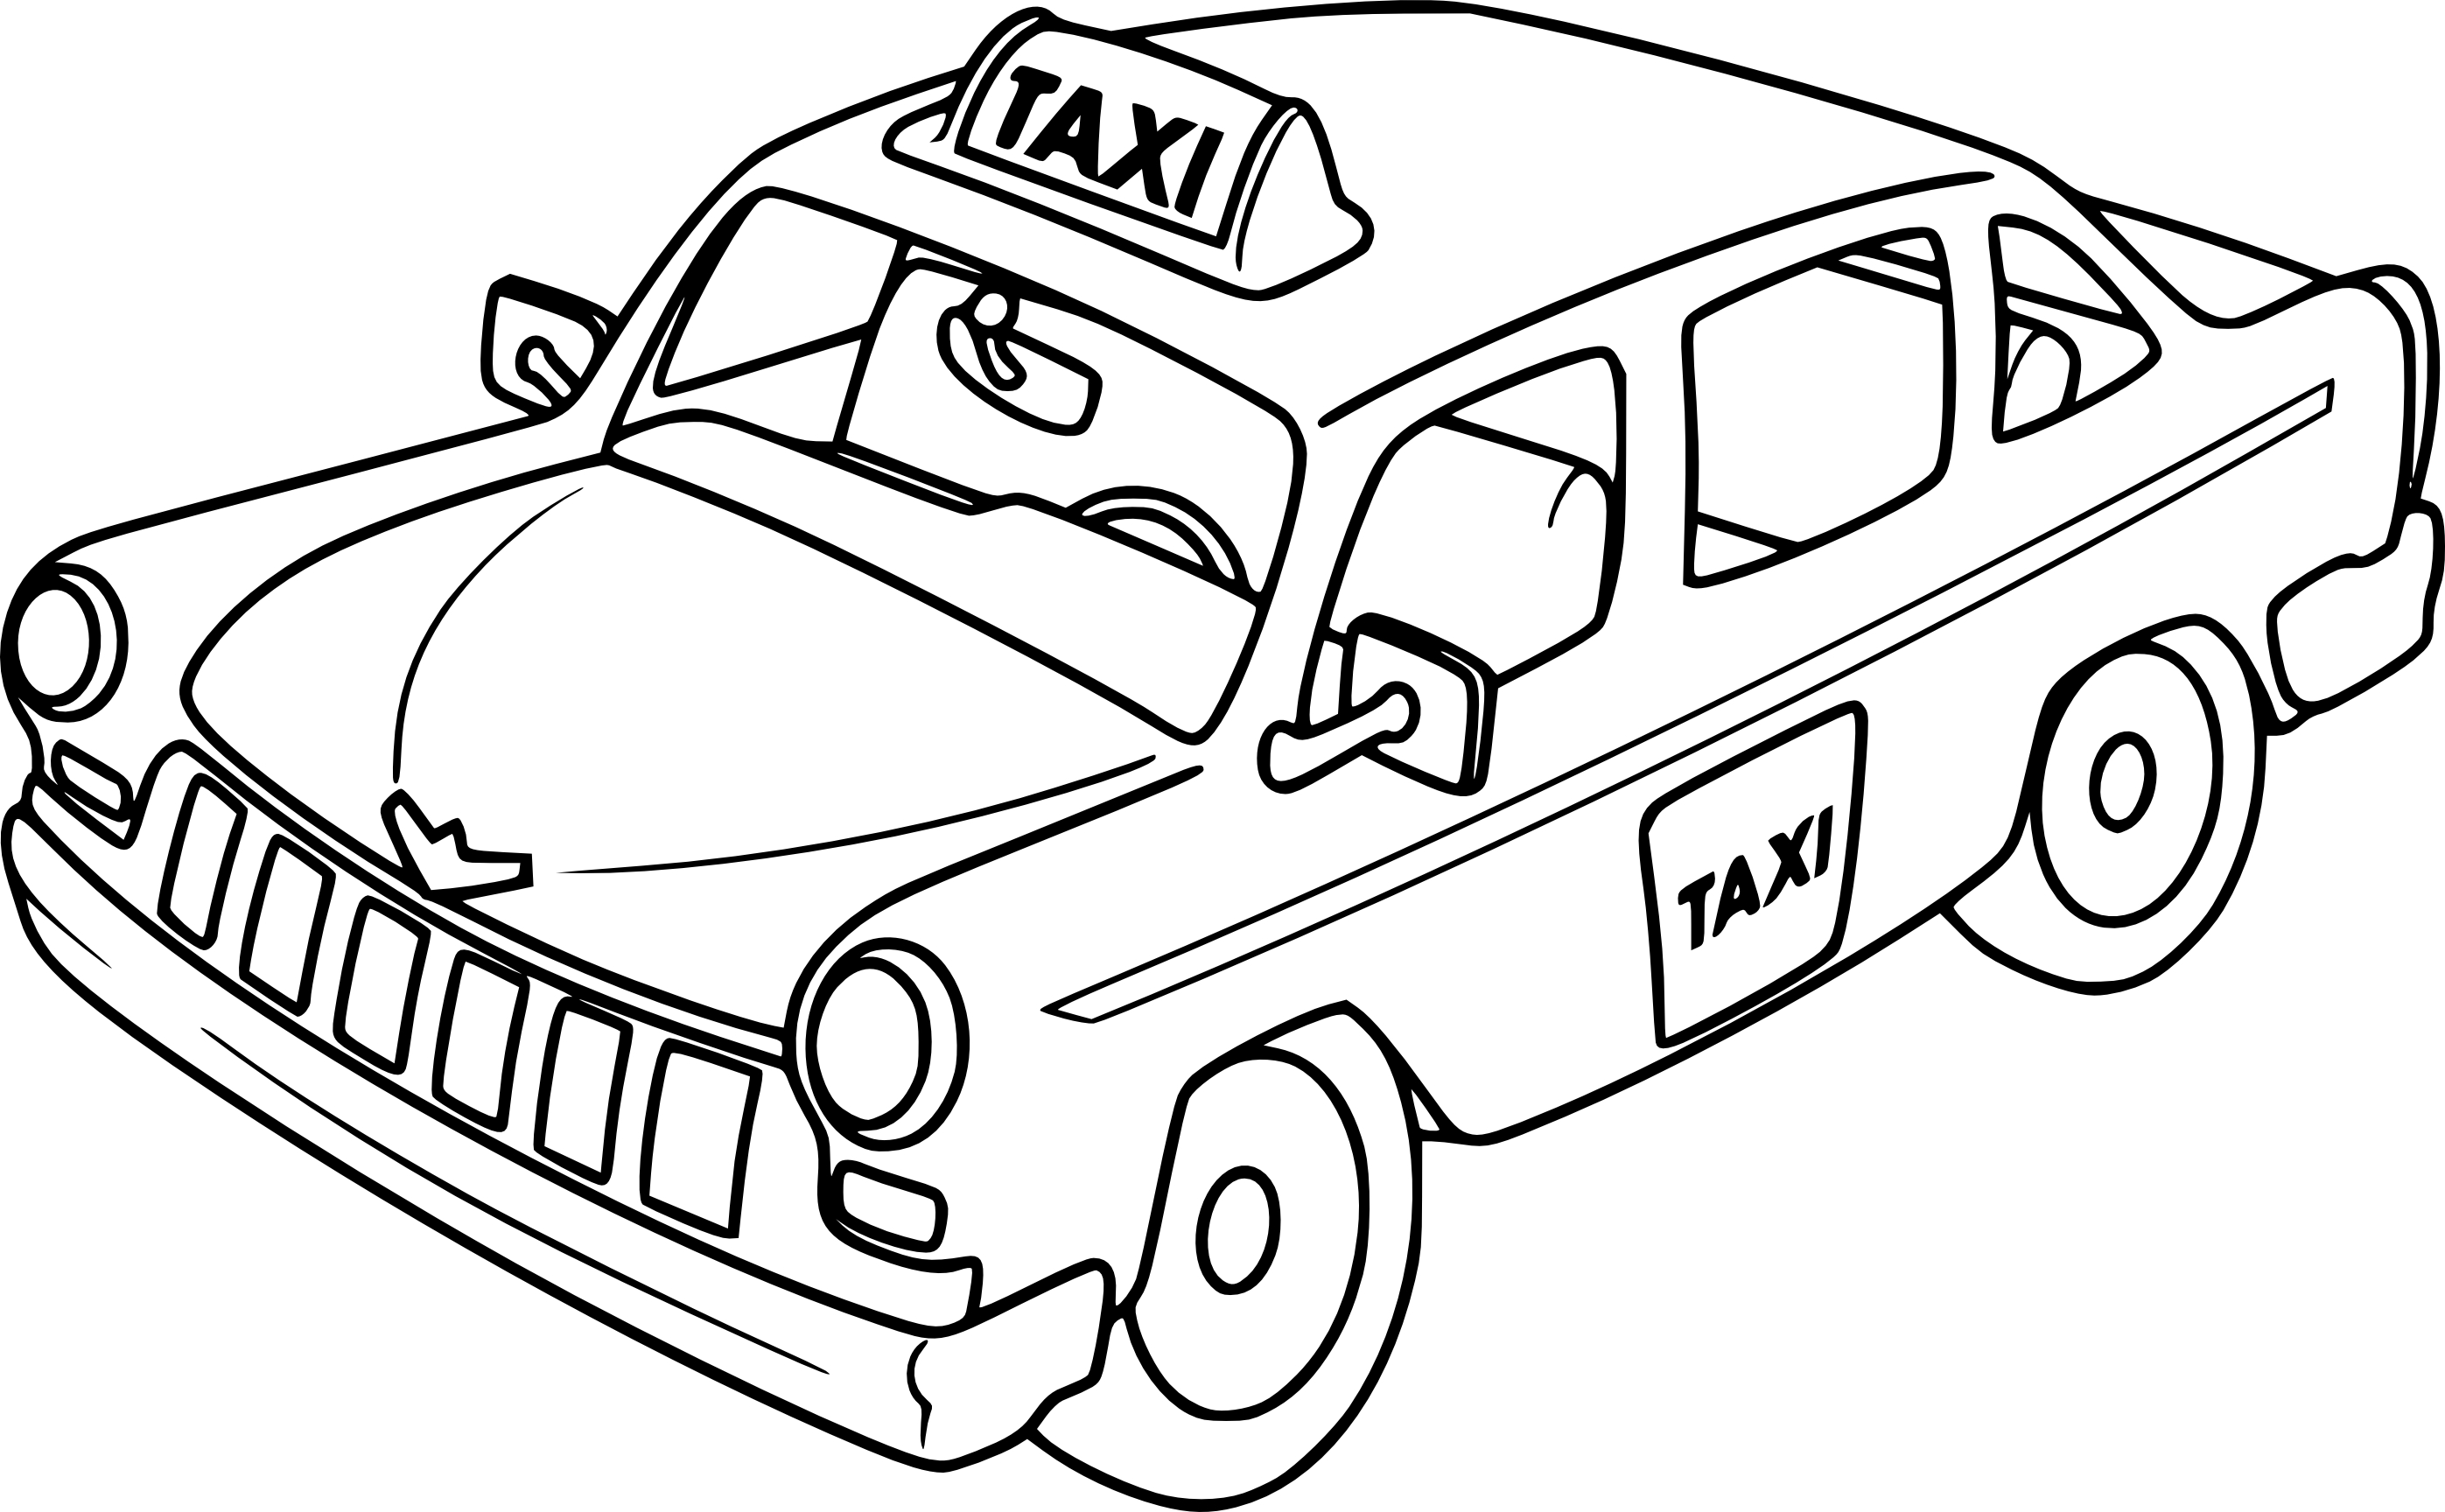 taxi colouring pages taxi coloring pages coloring pages to download and print colouring taxi pages